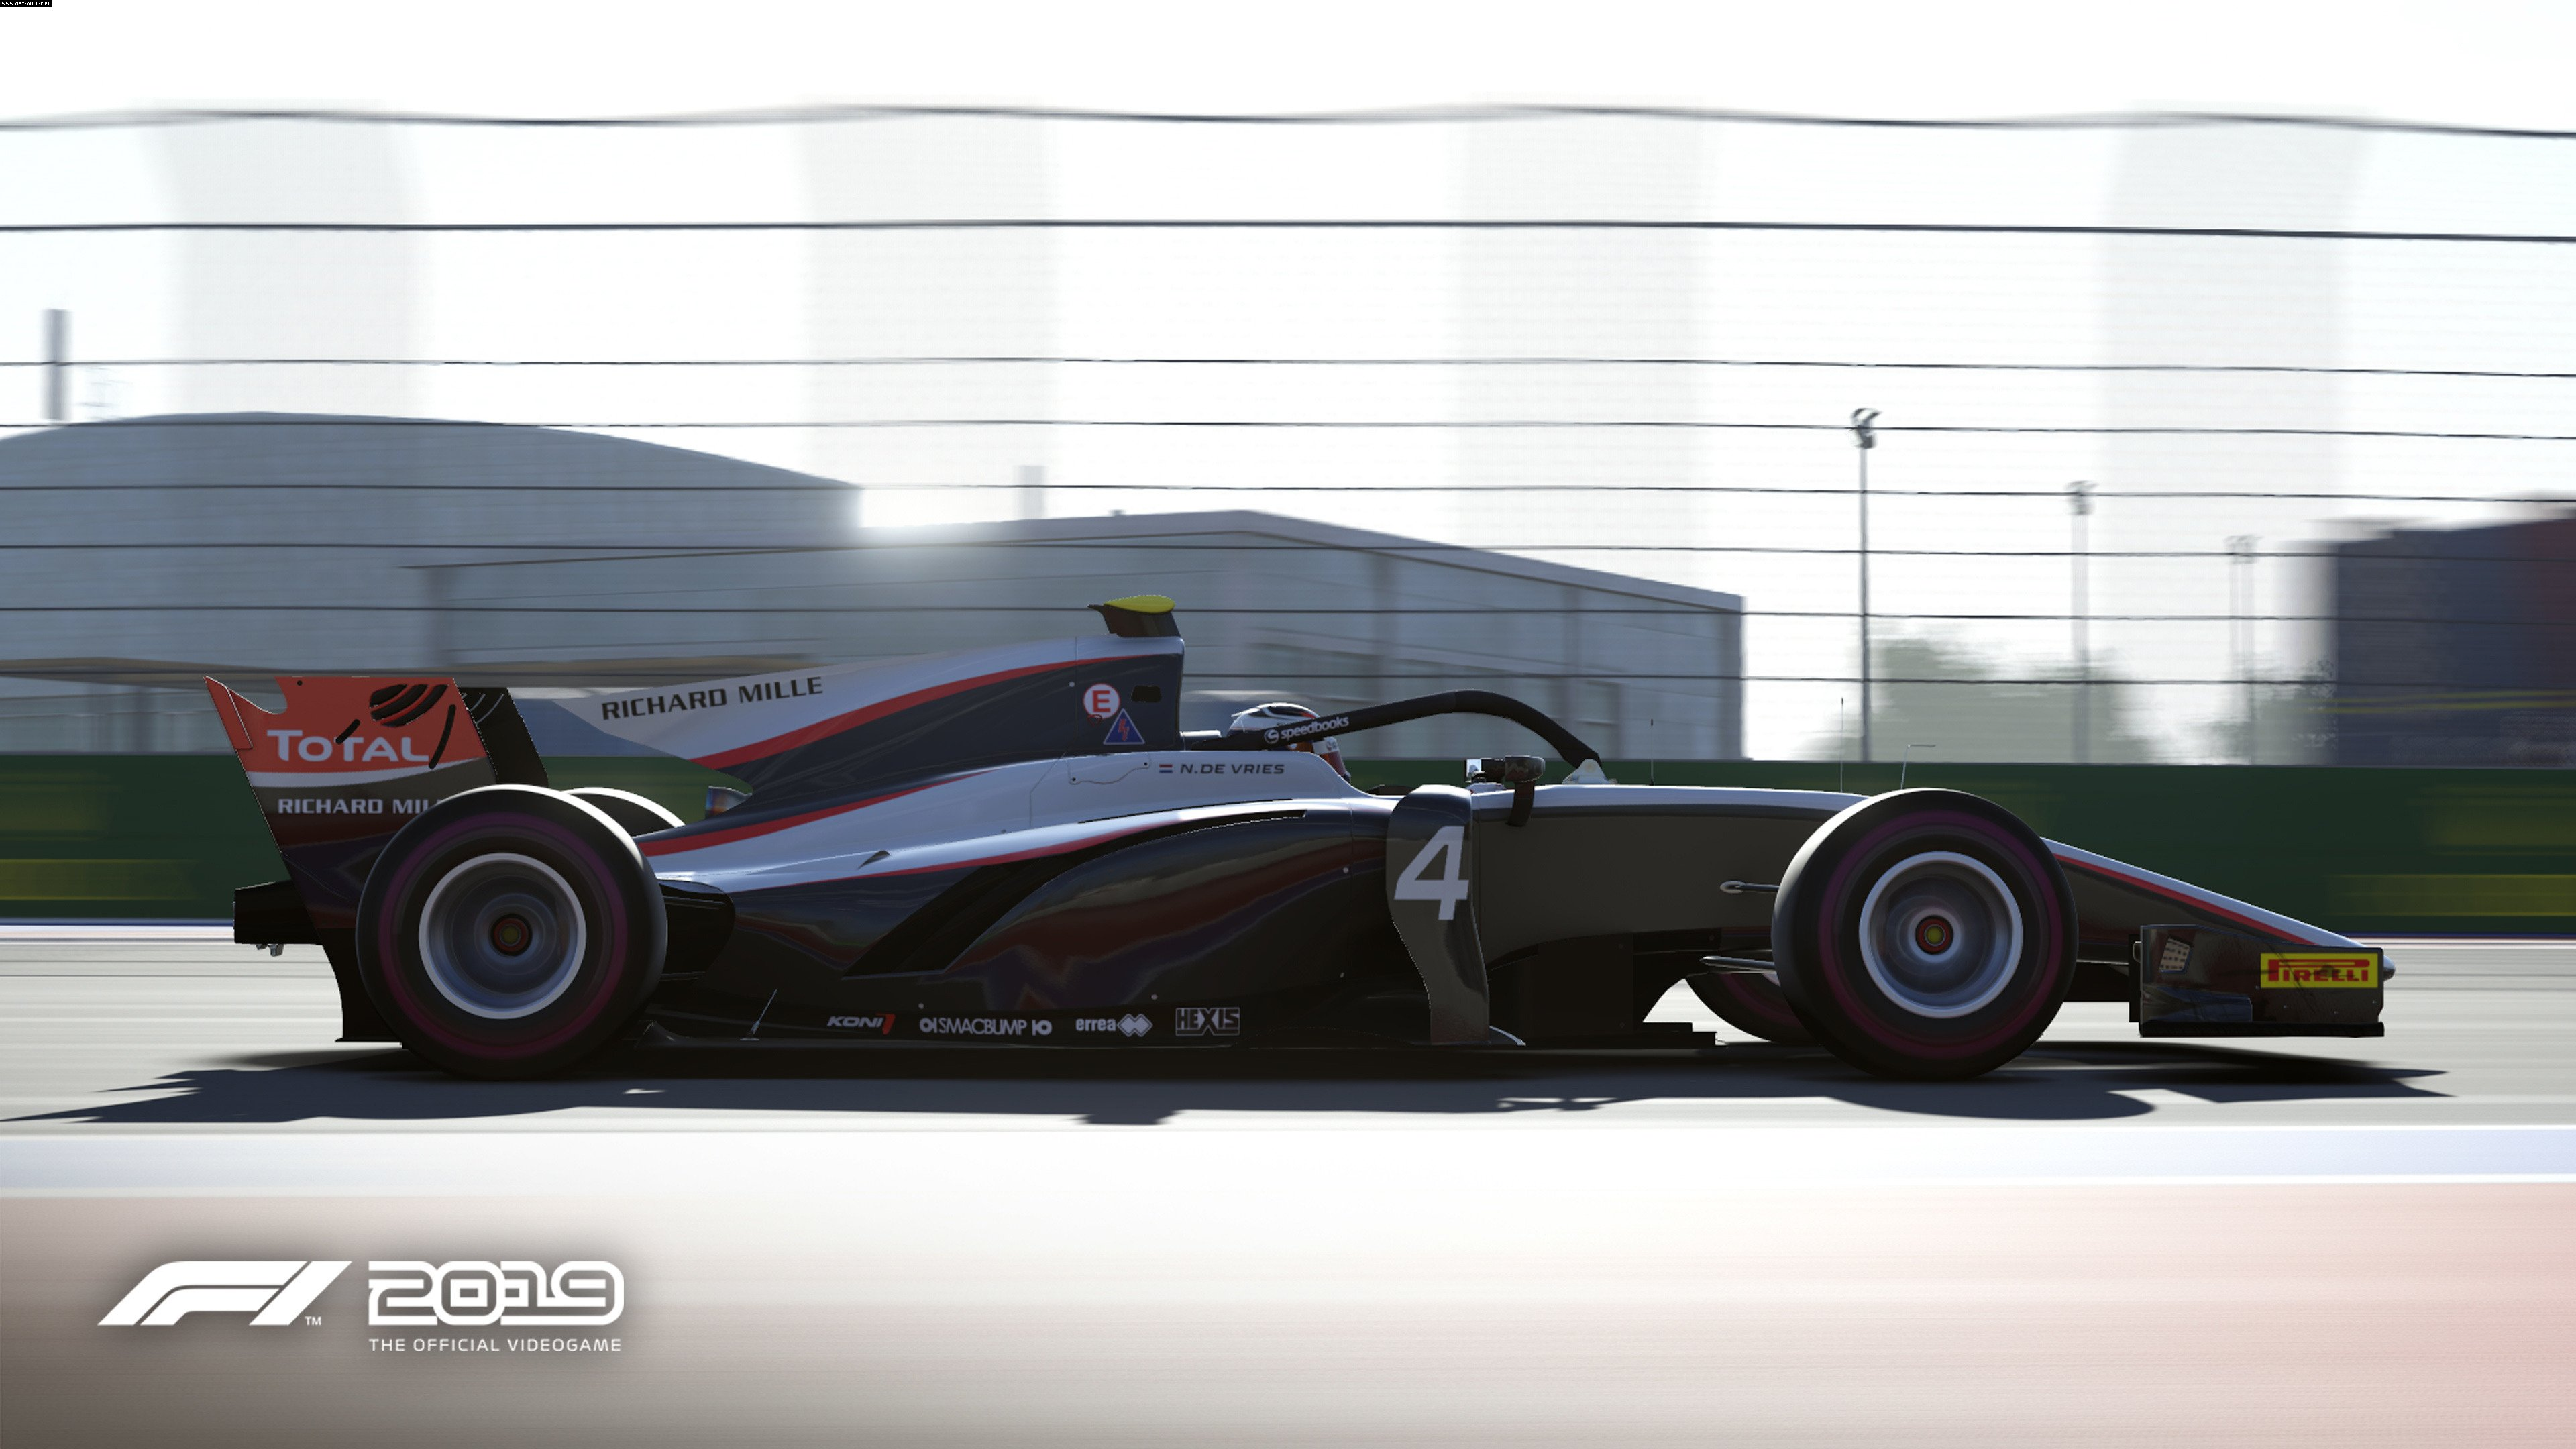 F1 2019 PC, PS4, XONE Games Image 8/104, Codemasters Software